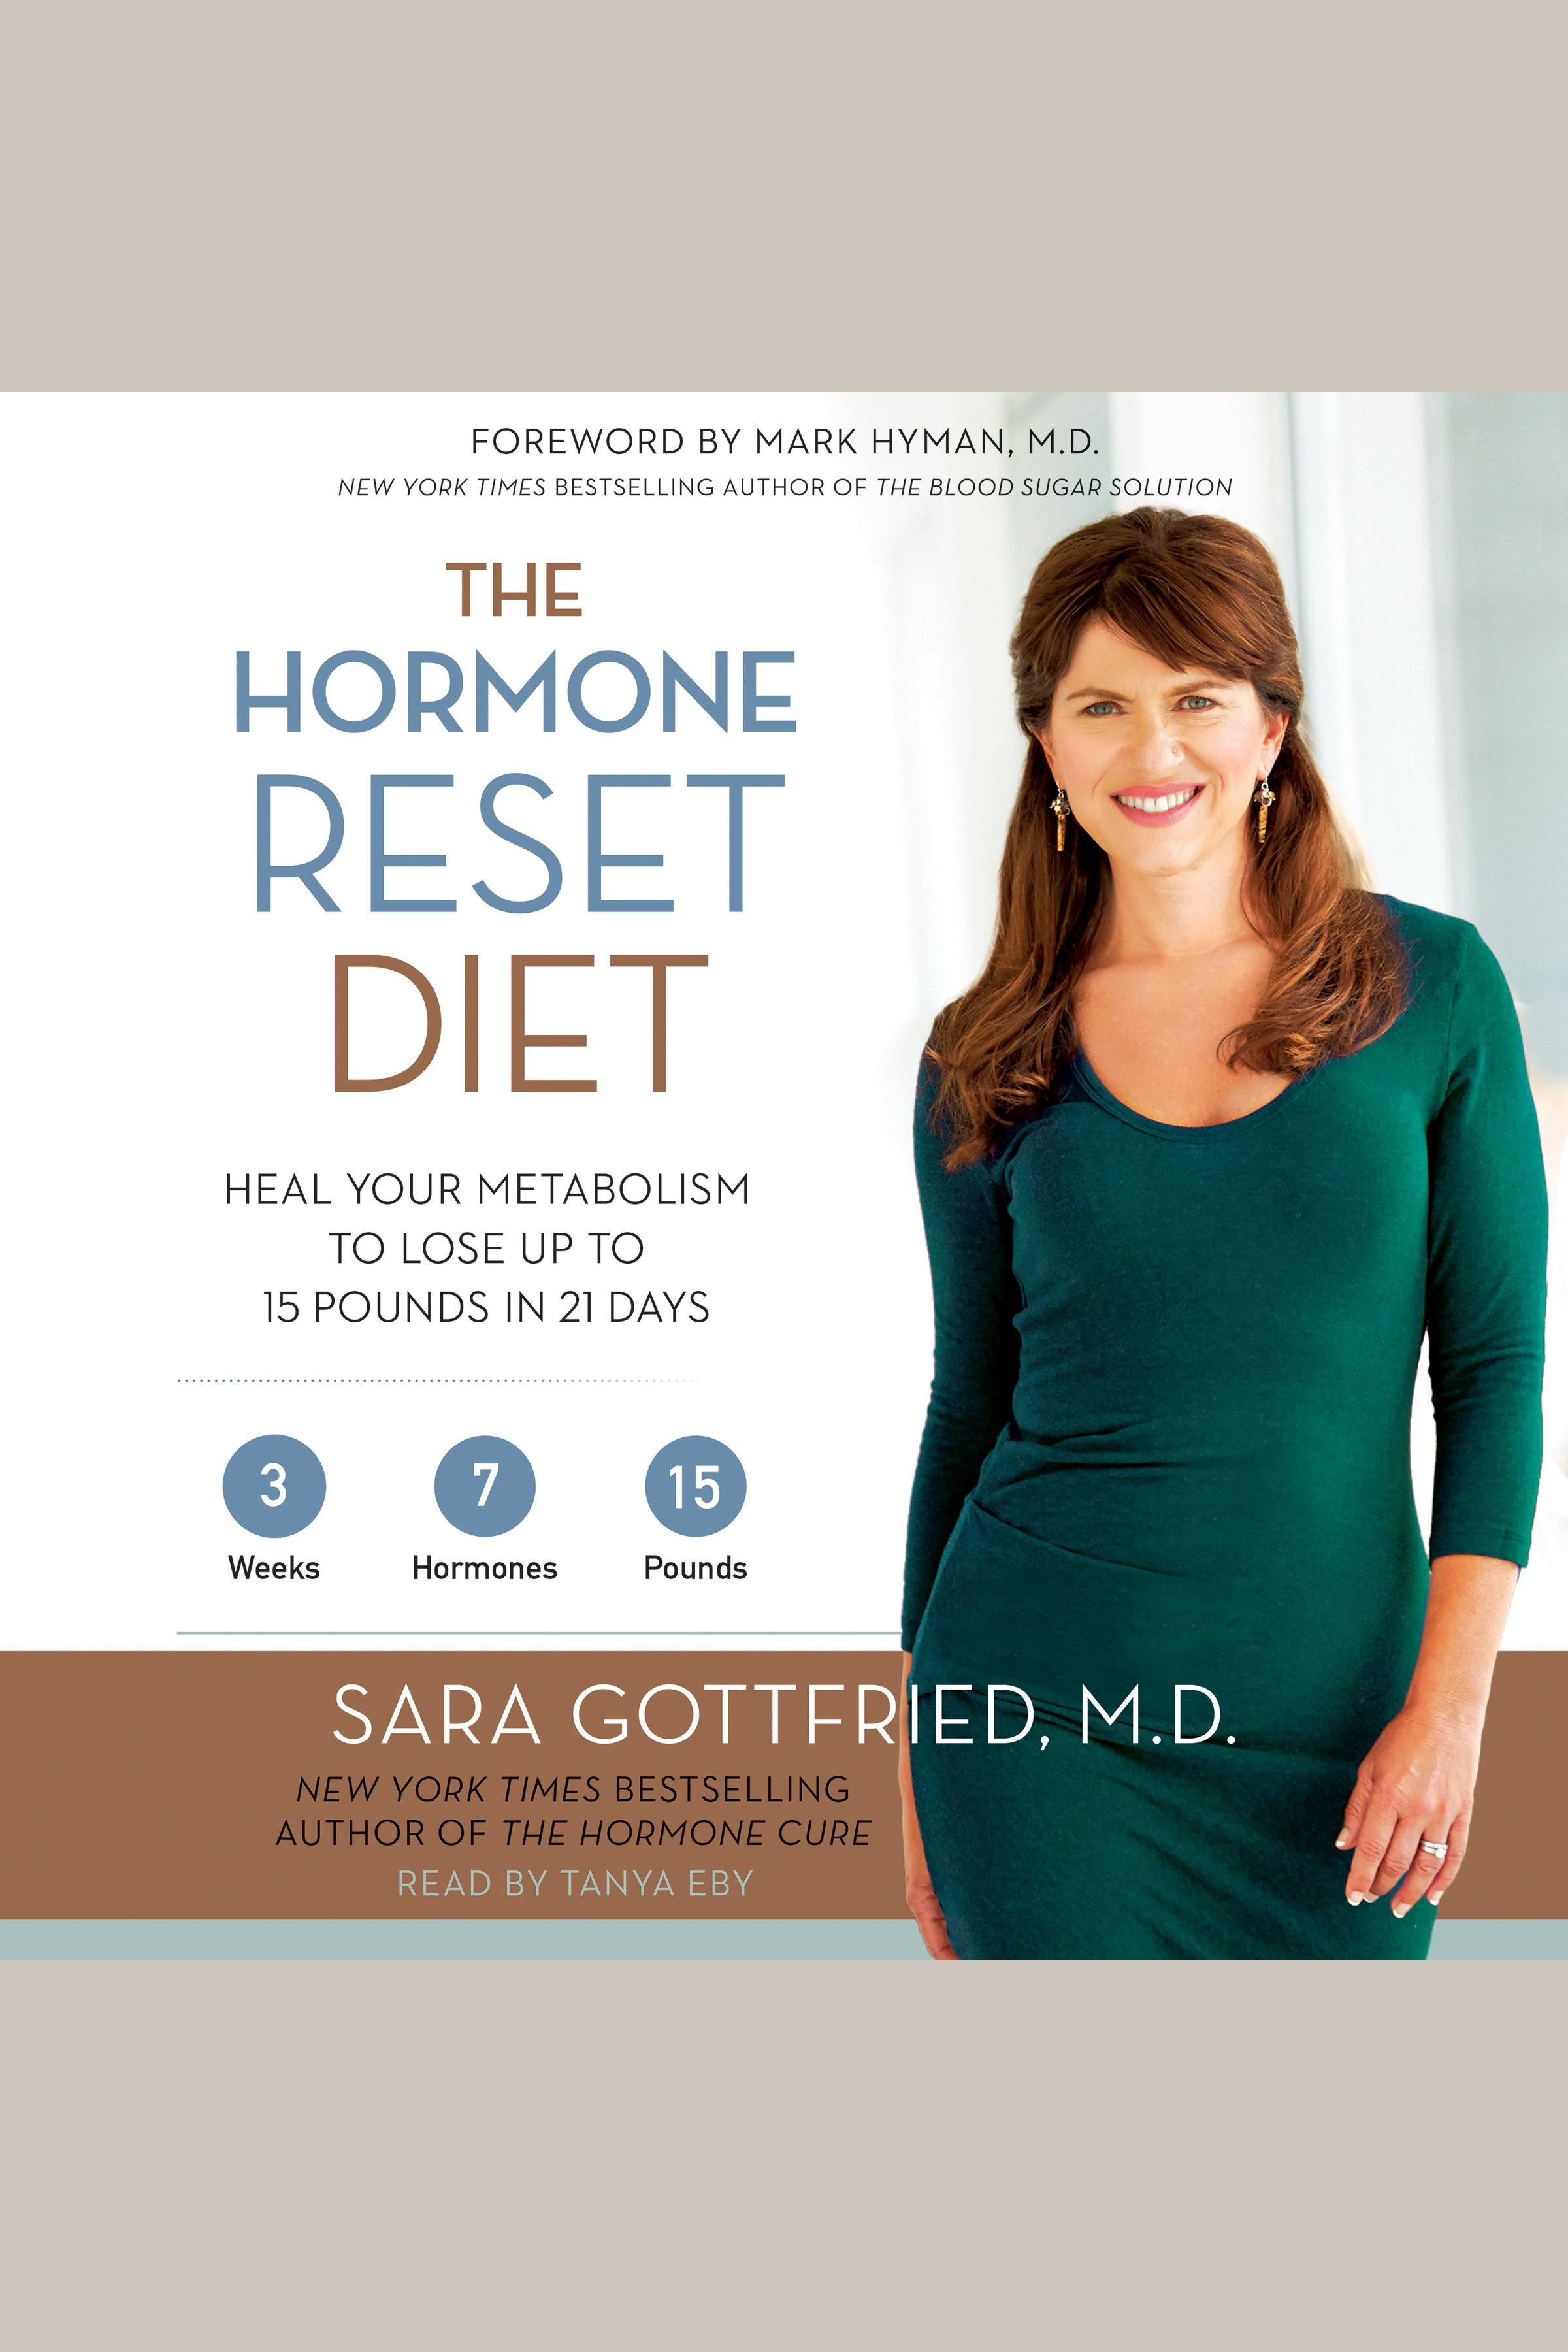 Hormone Reset Diet, The Heal Your Metabolism to Lose Up to 15 Pounds in 21 Days